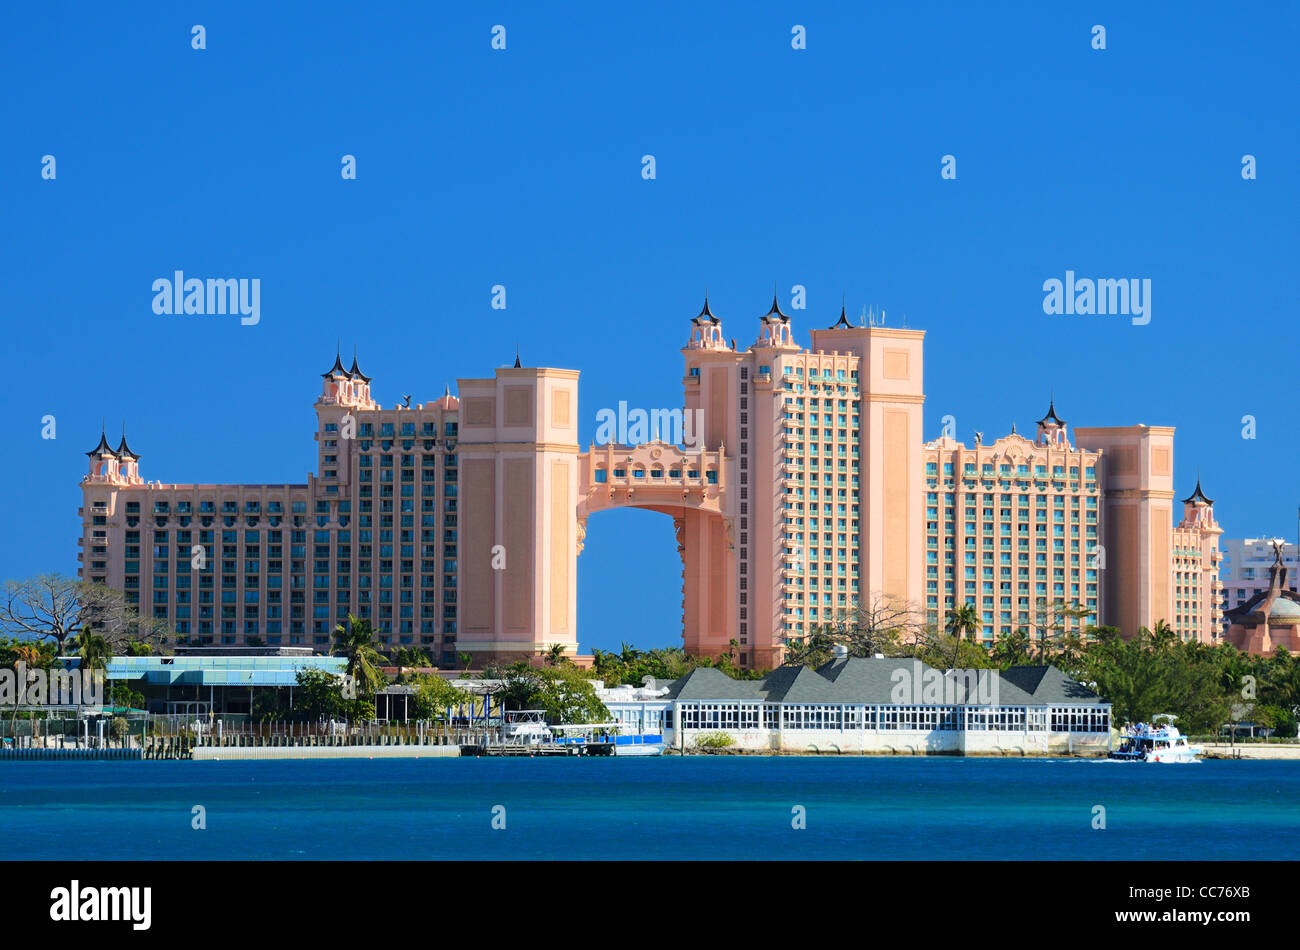 Atlantis Paradise Island resort in Nassau, Bahamas. - Stock Image